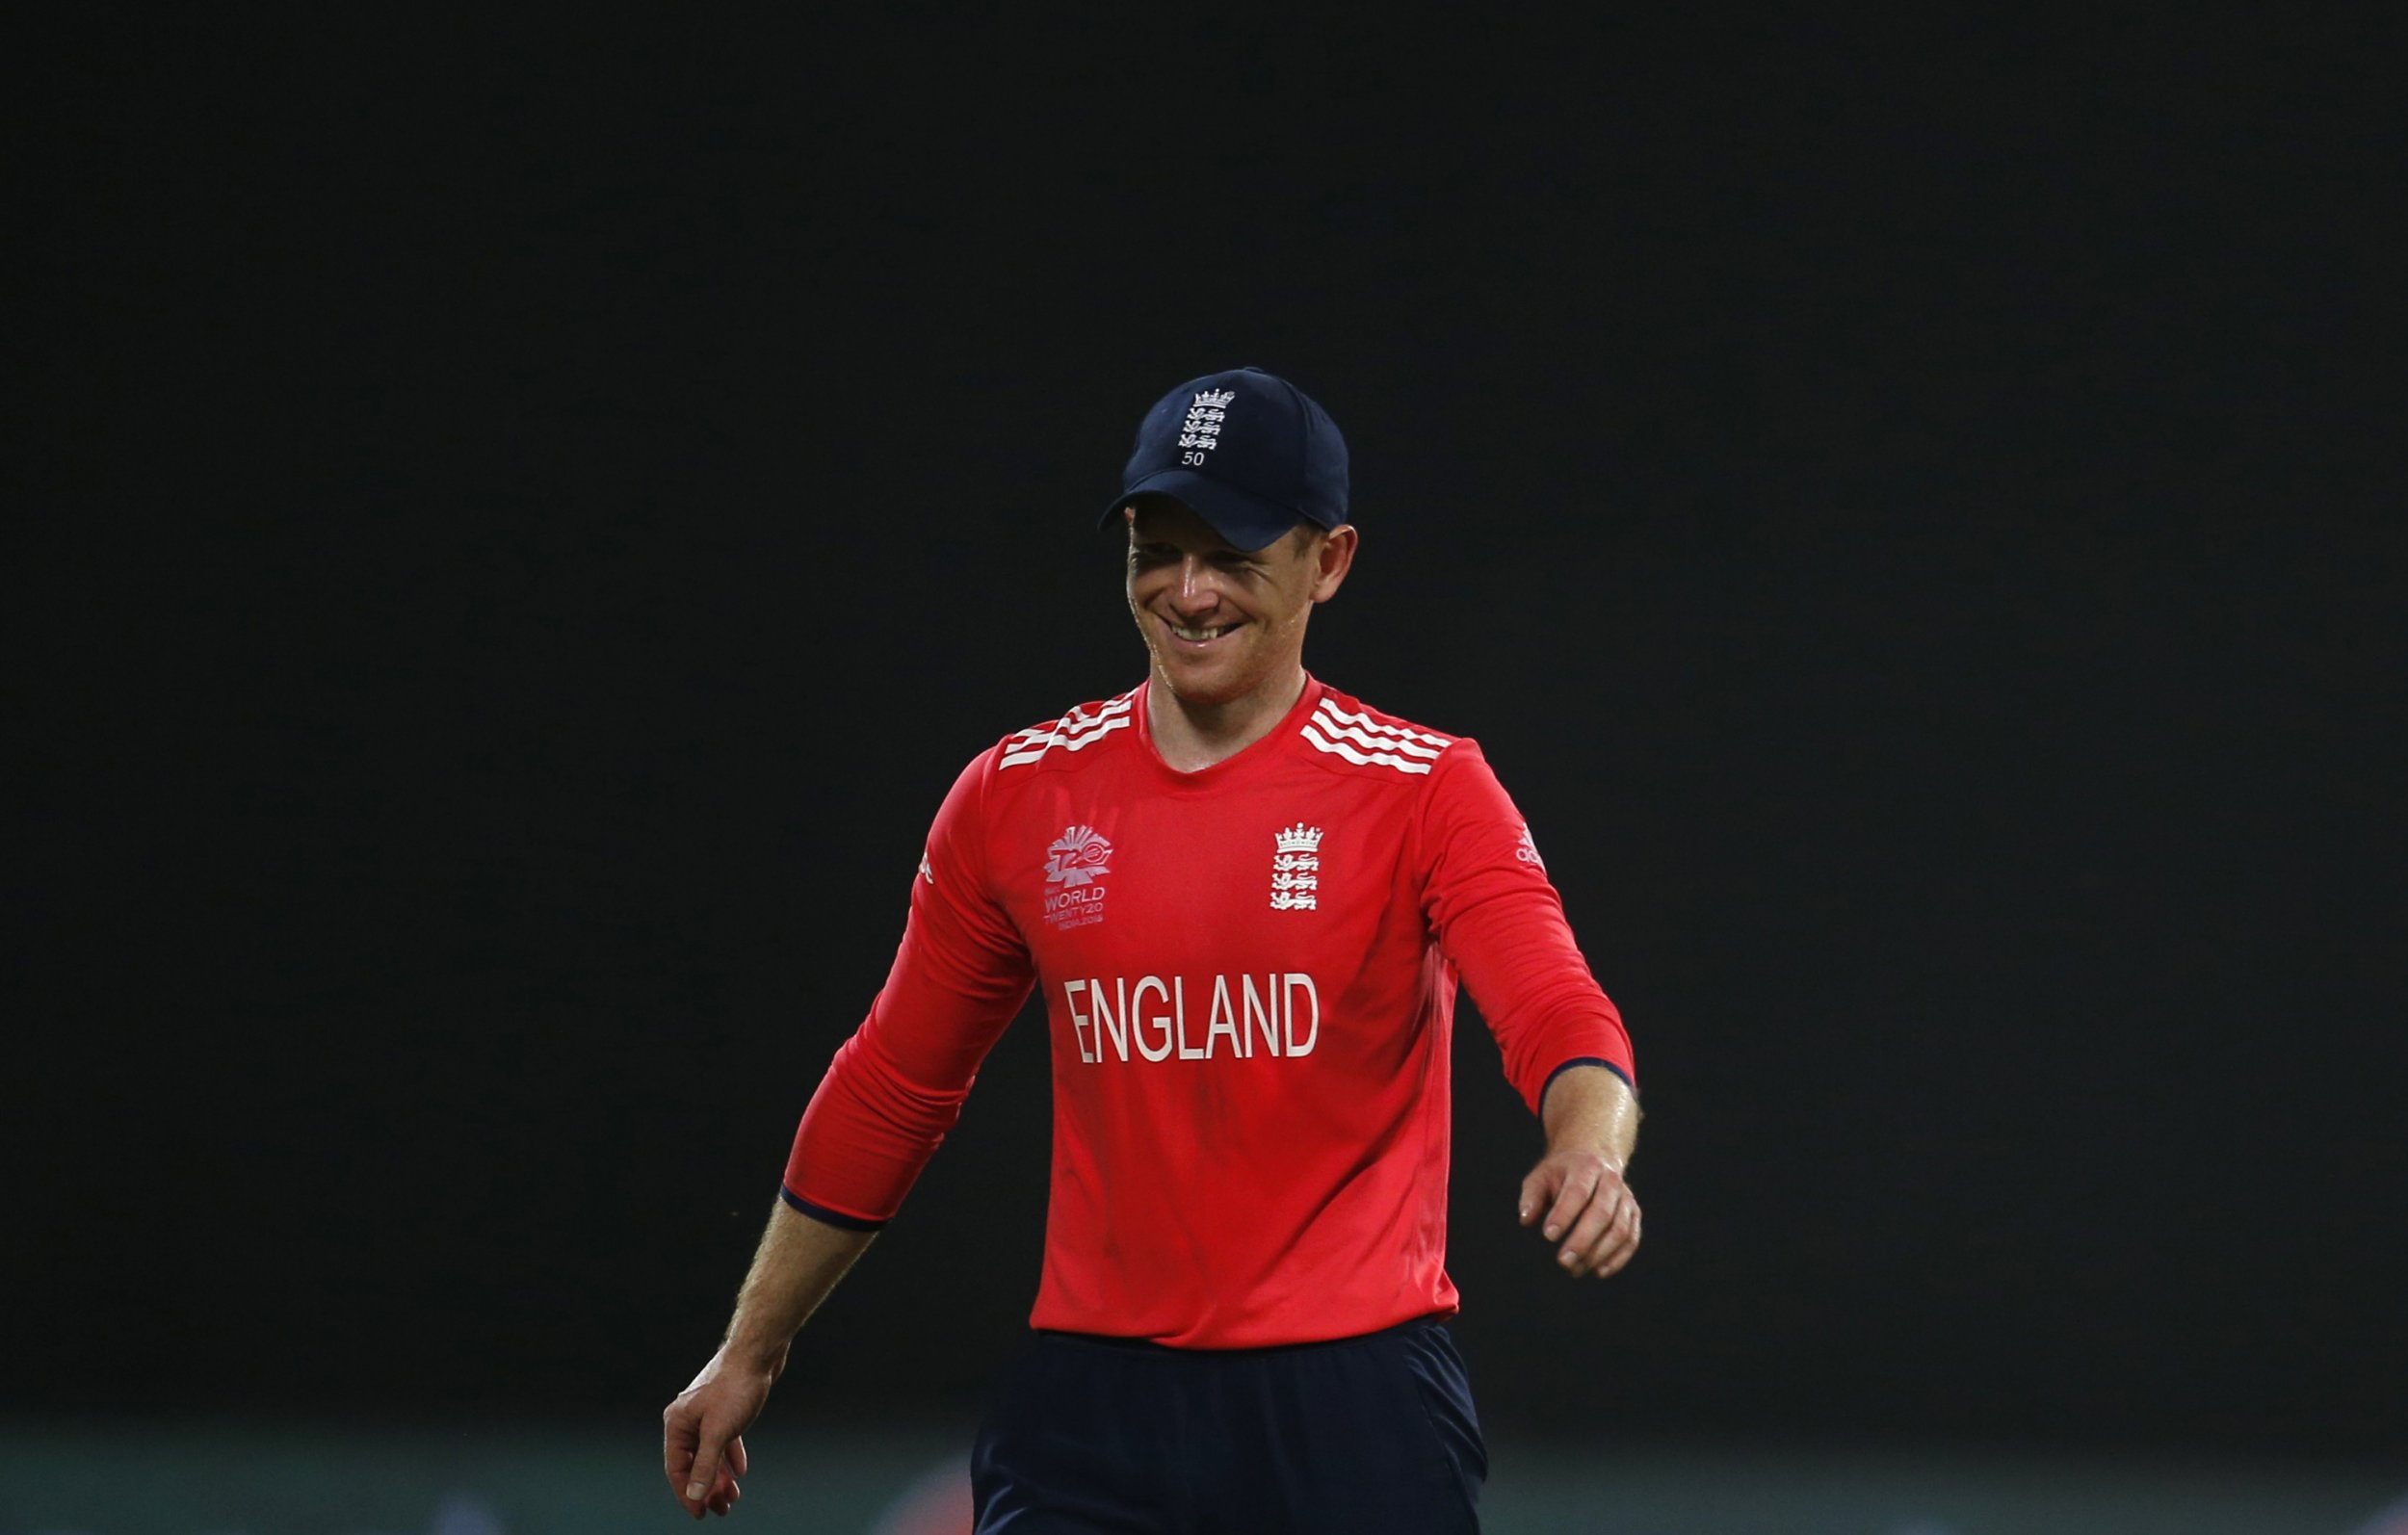 Eoin Morgan leads England against New Zealand on Wednesday.